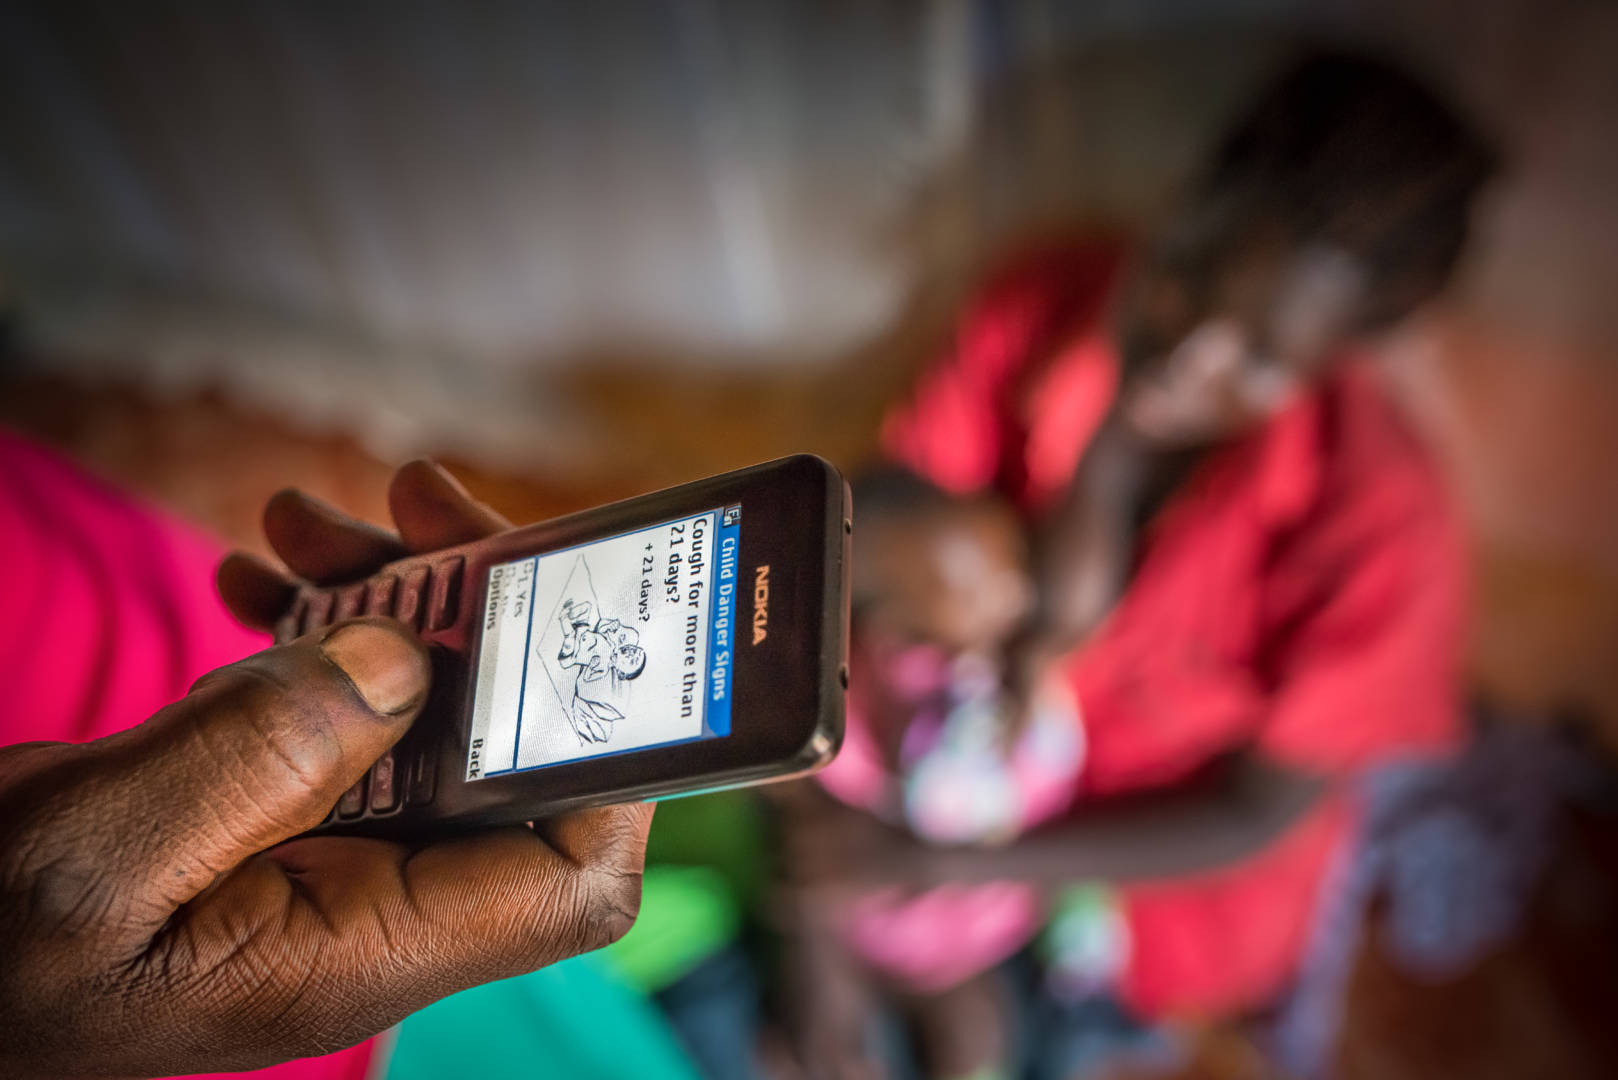 Mobile health technology gives World Vision an unrivalled opportunity to improve people's health, especially in countries where access to healthcare is severly limited.